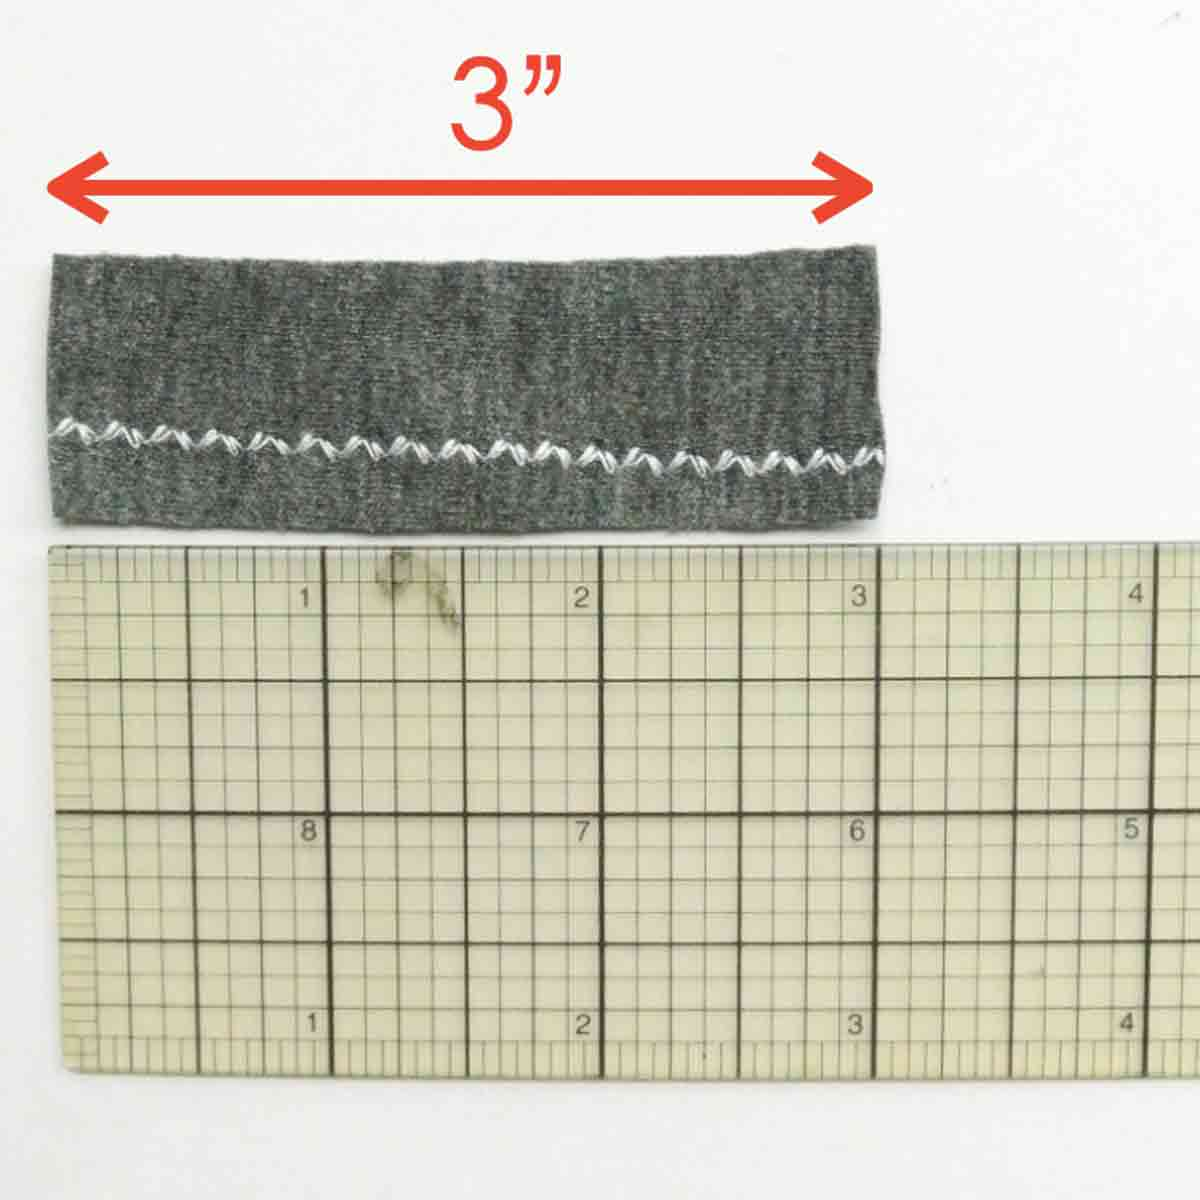 Reinforced zigzag stitch over ruler measuring 3 inches